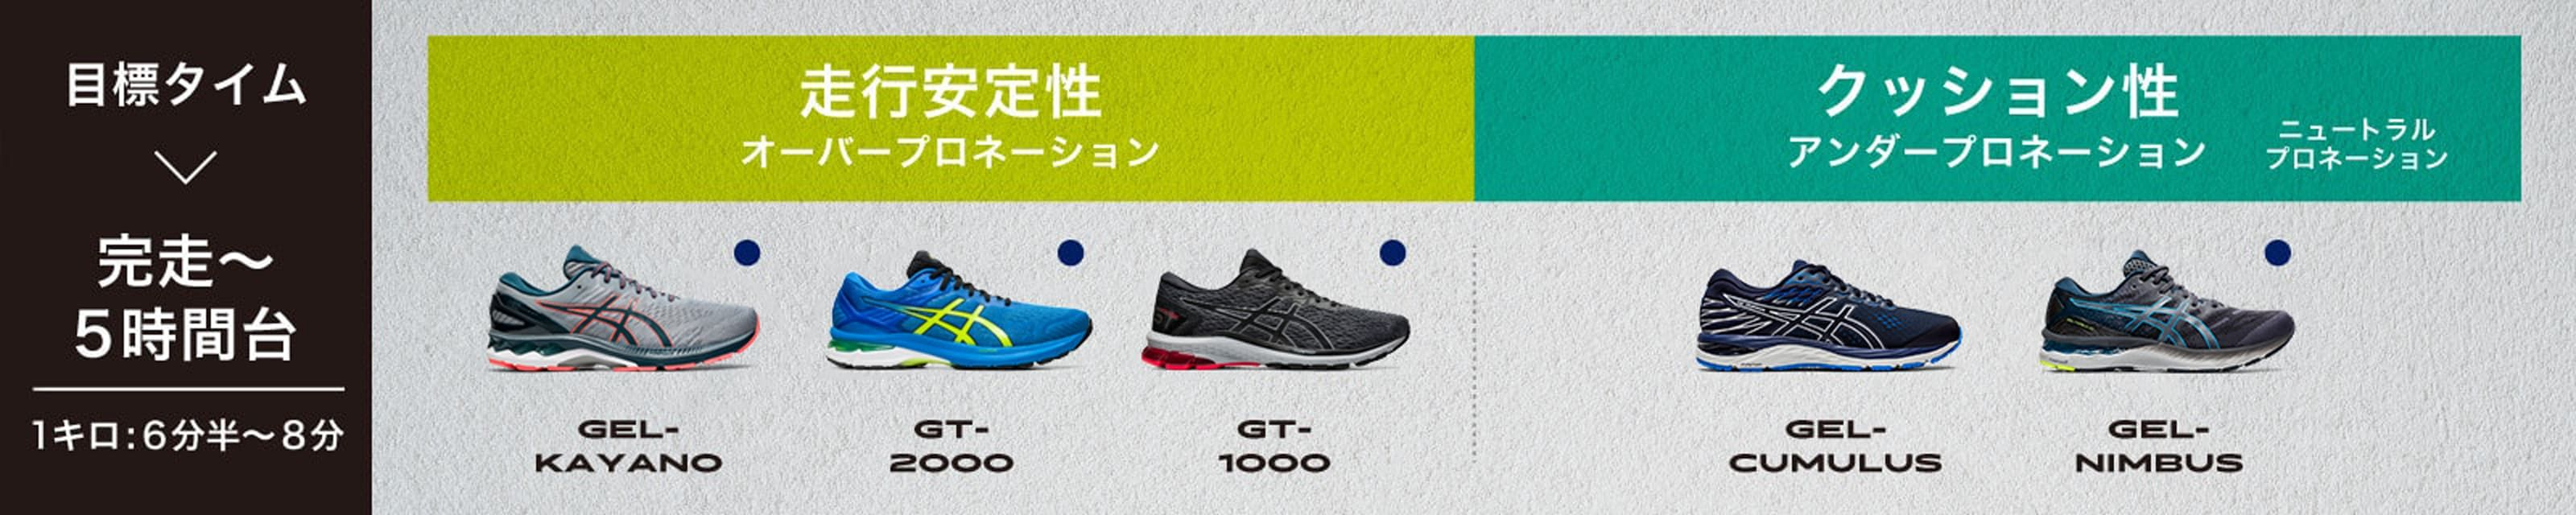 running pronation 21ss chart pc